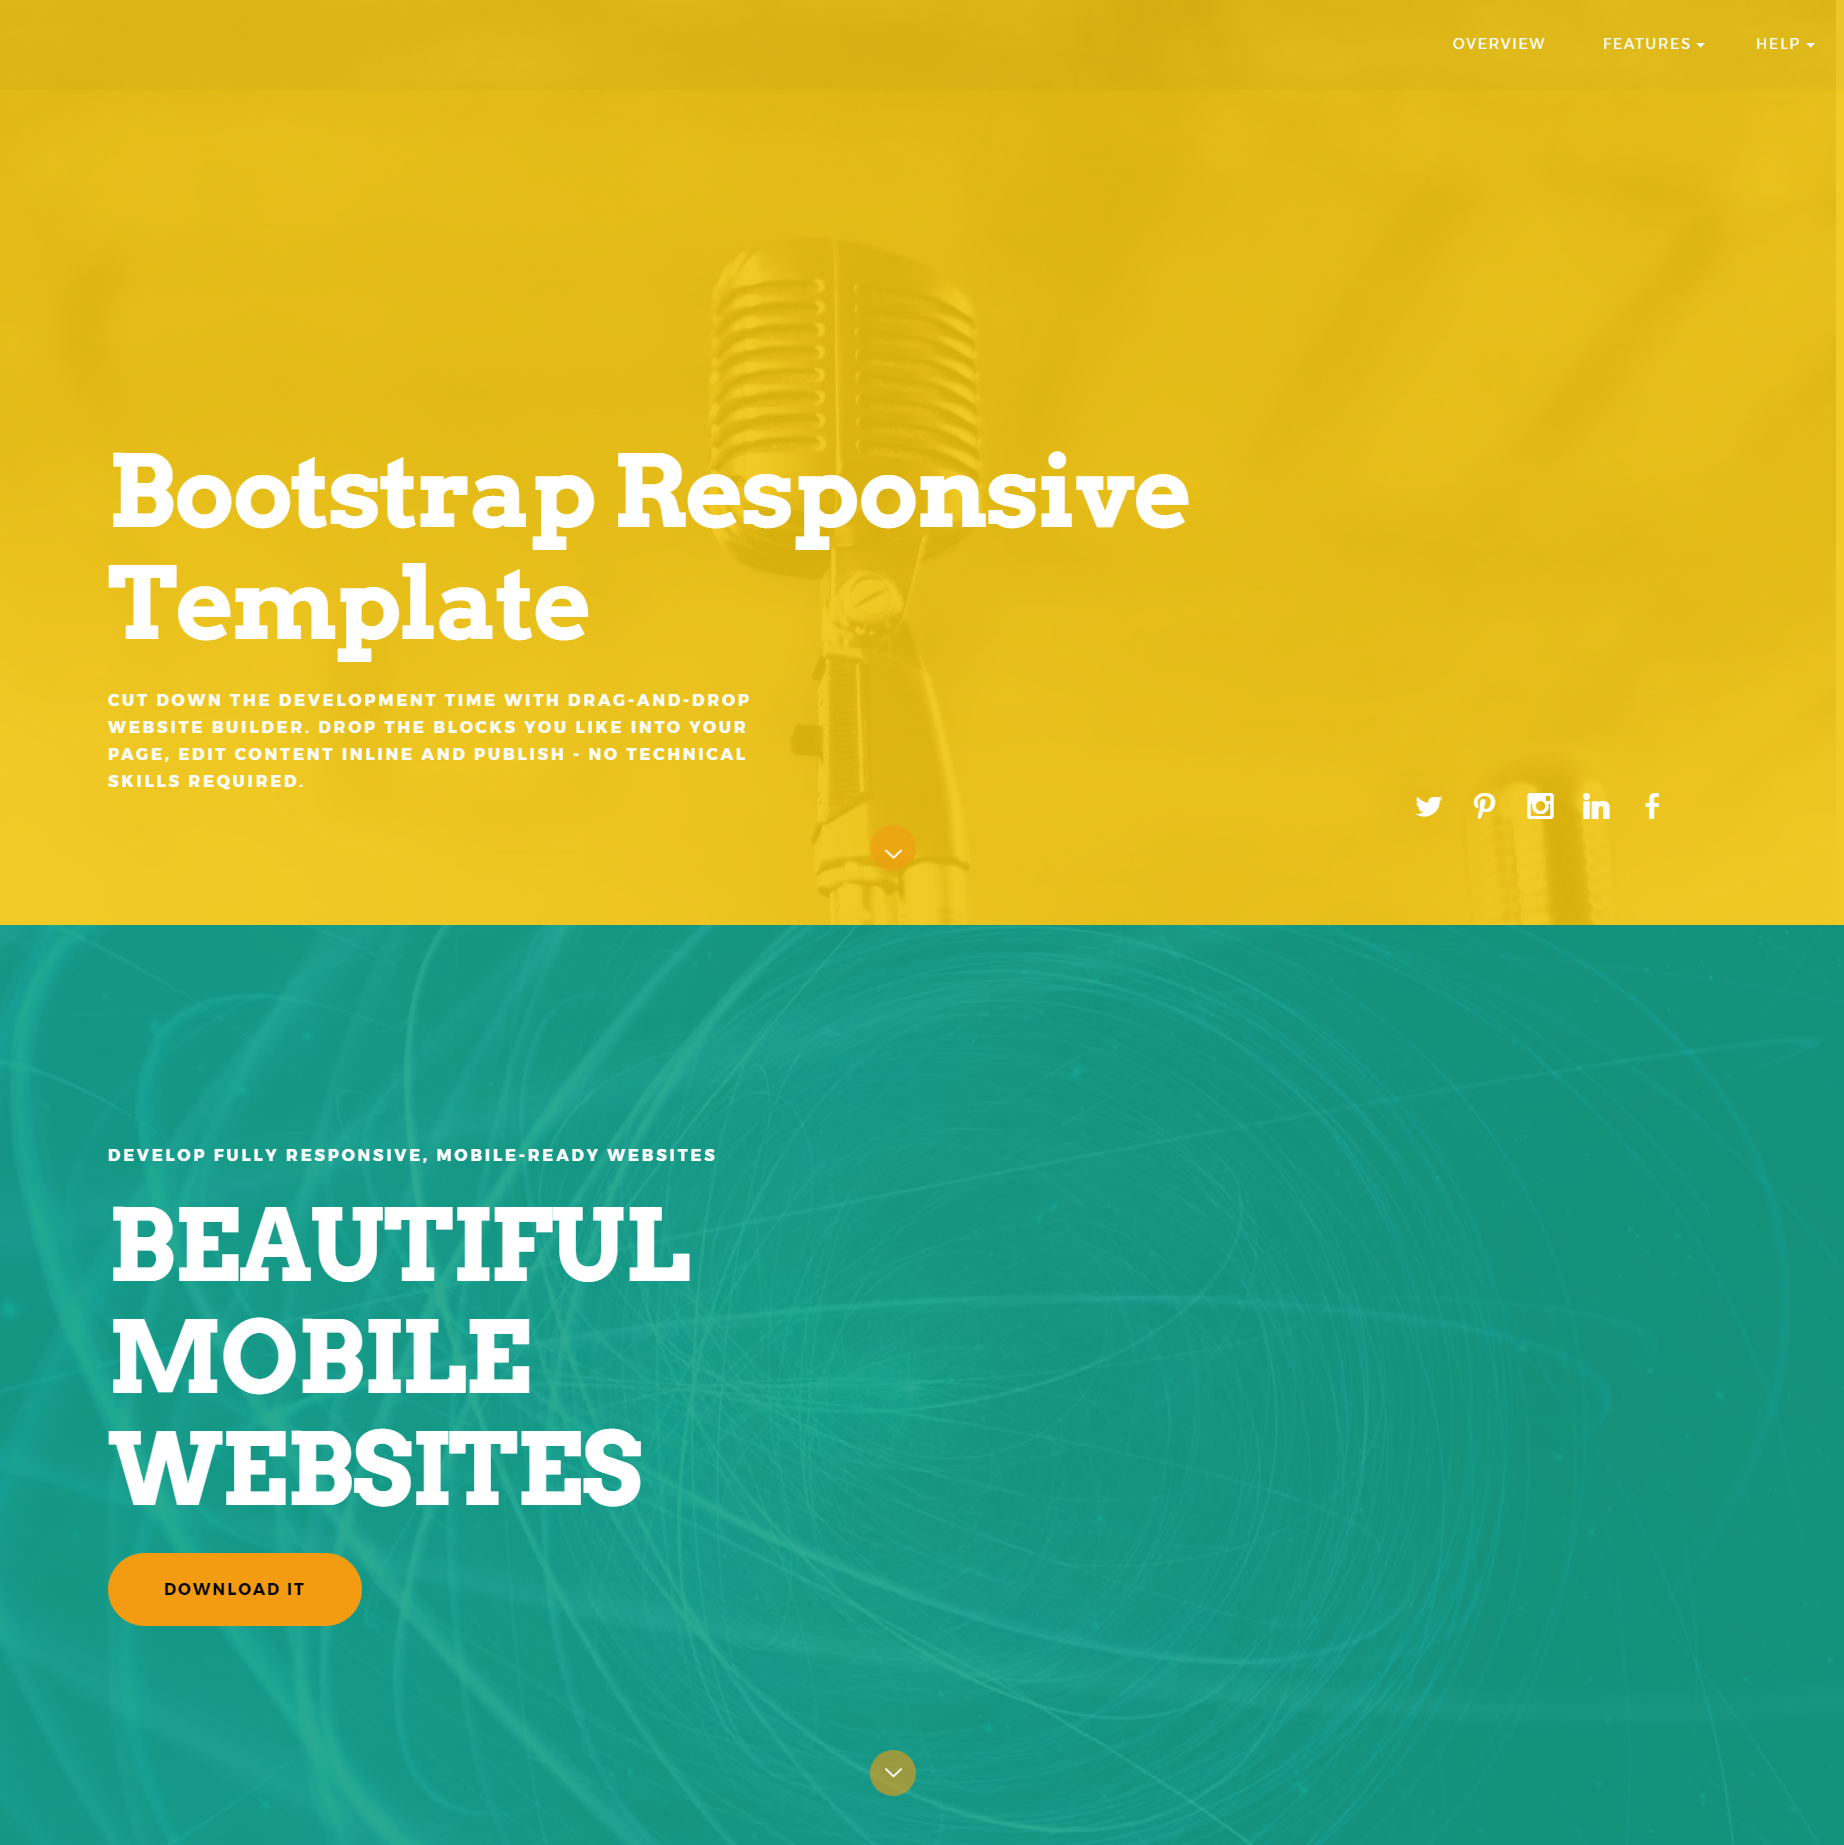 HTML Bootstrap Responsive Templates